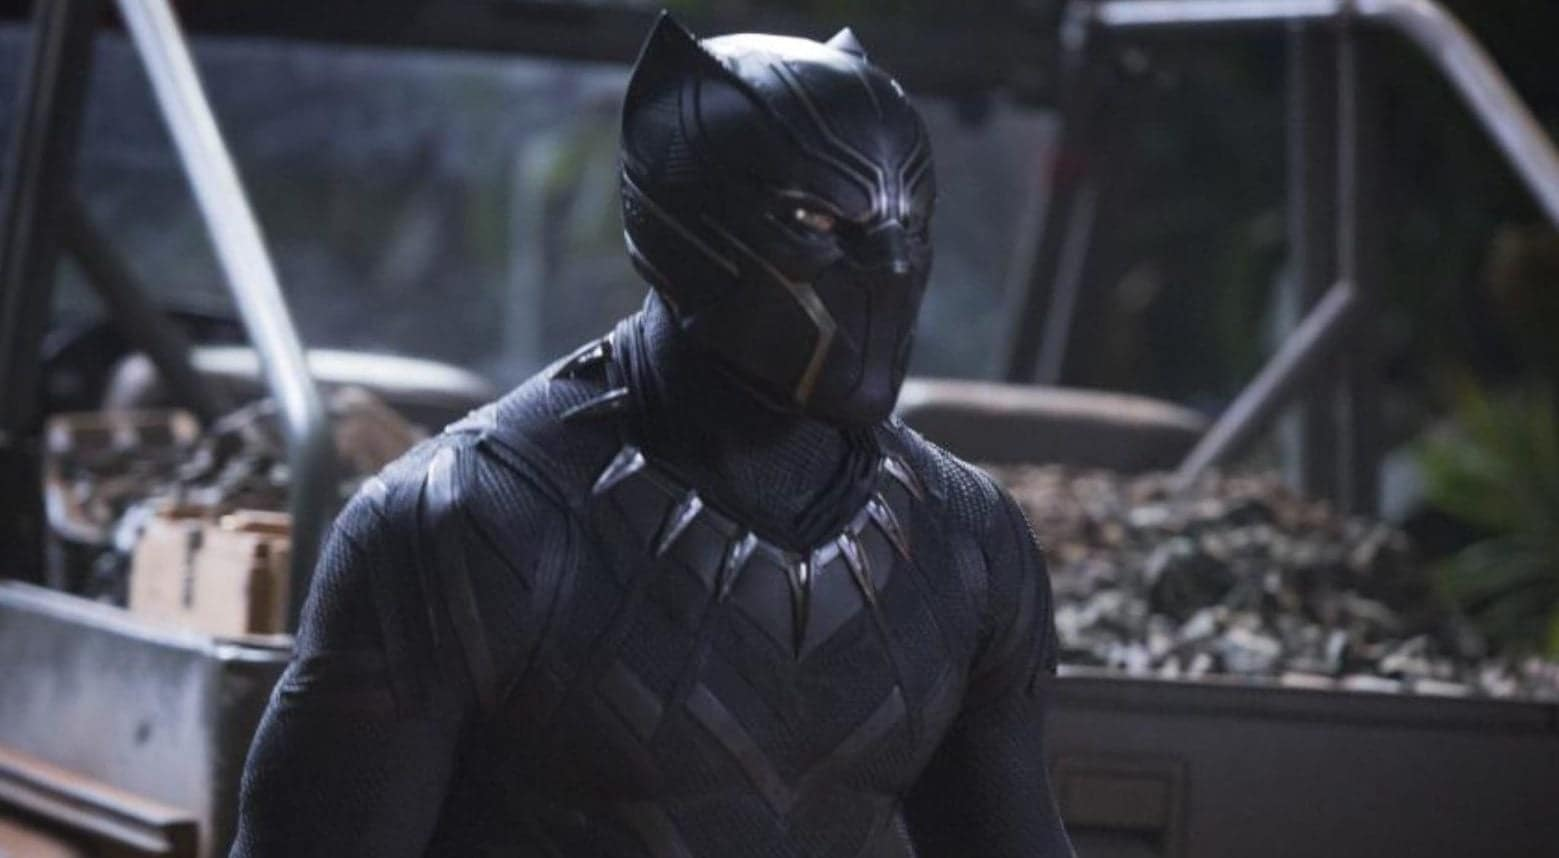 Is Black Panther Nominated for Any Oscars?